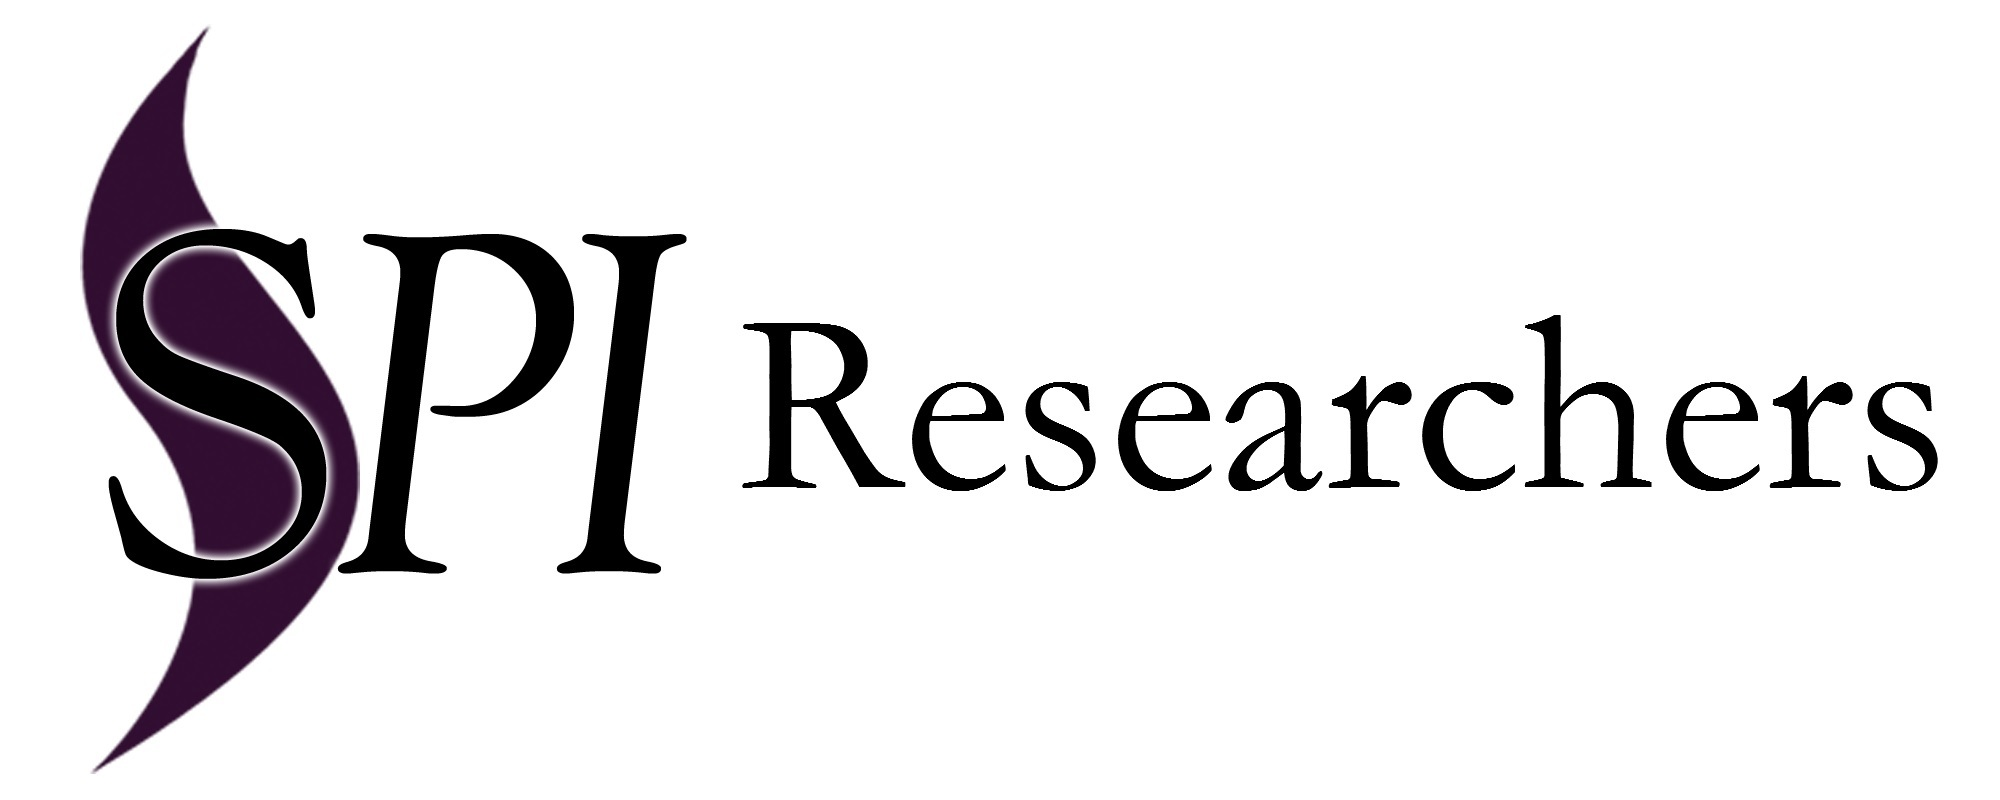 spi-researchers-logo